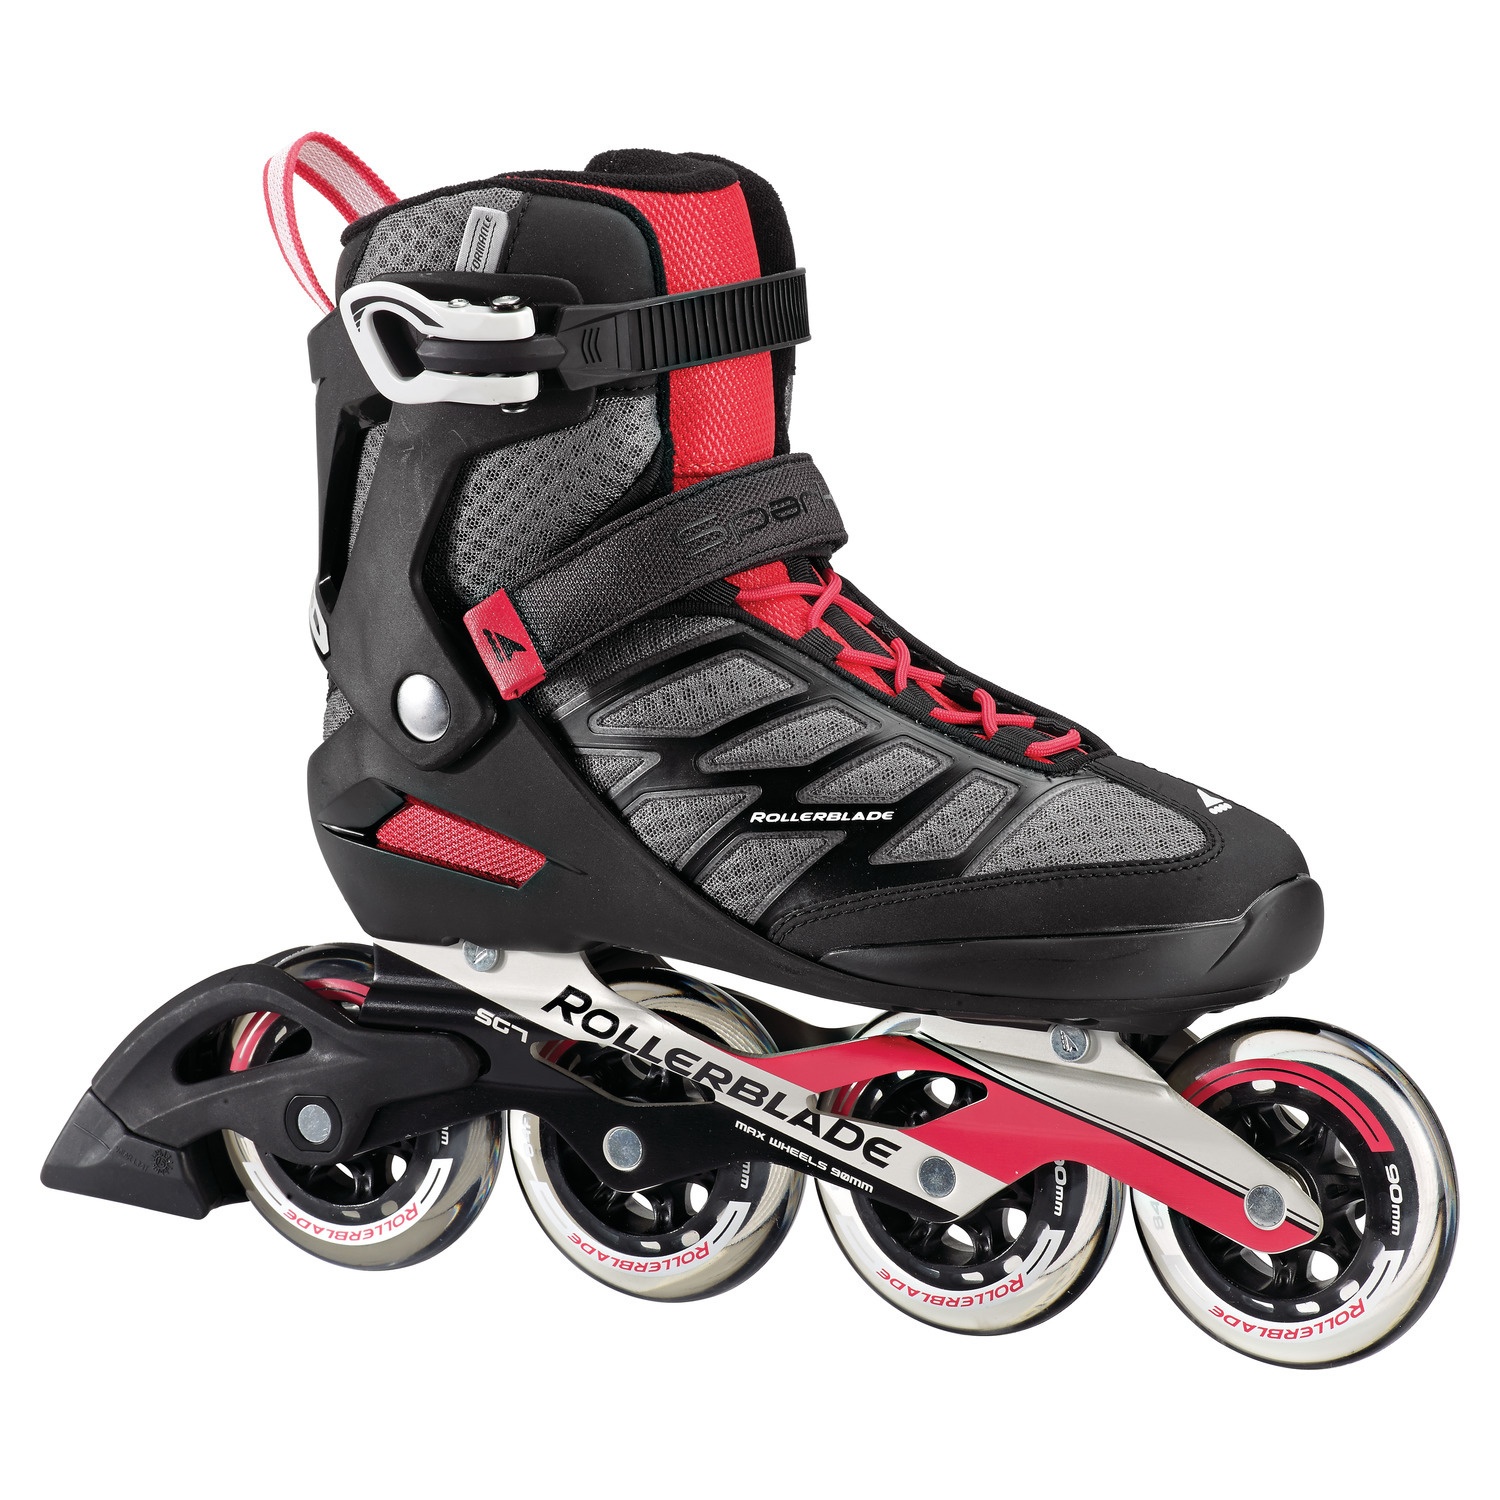 rollerblade spark 90 w quipement patins roues align es adulte intersport canada. Black Bedroom Furniture Sets. Home Design Ideas